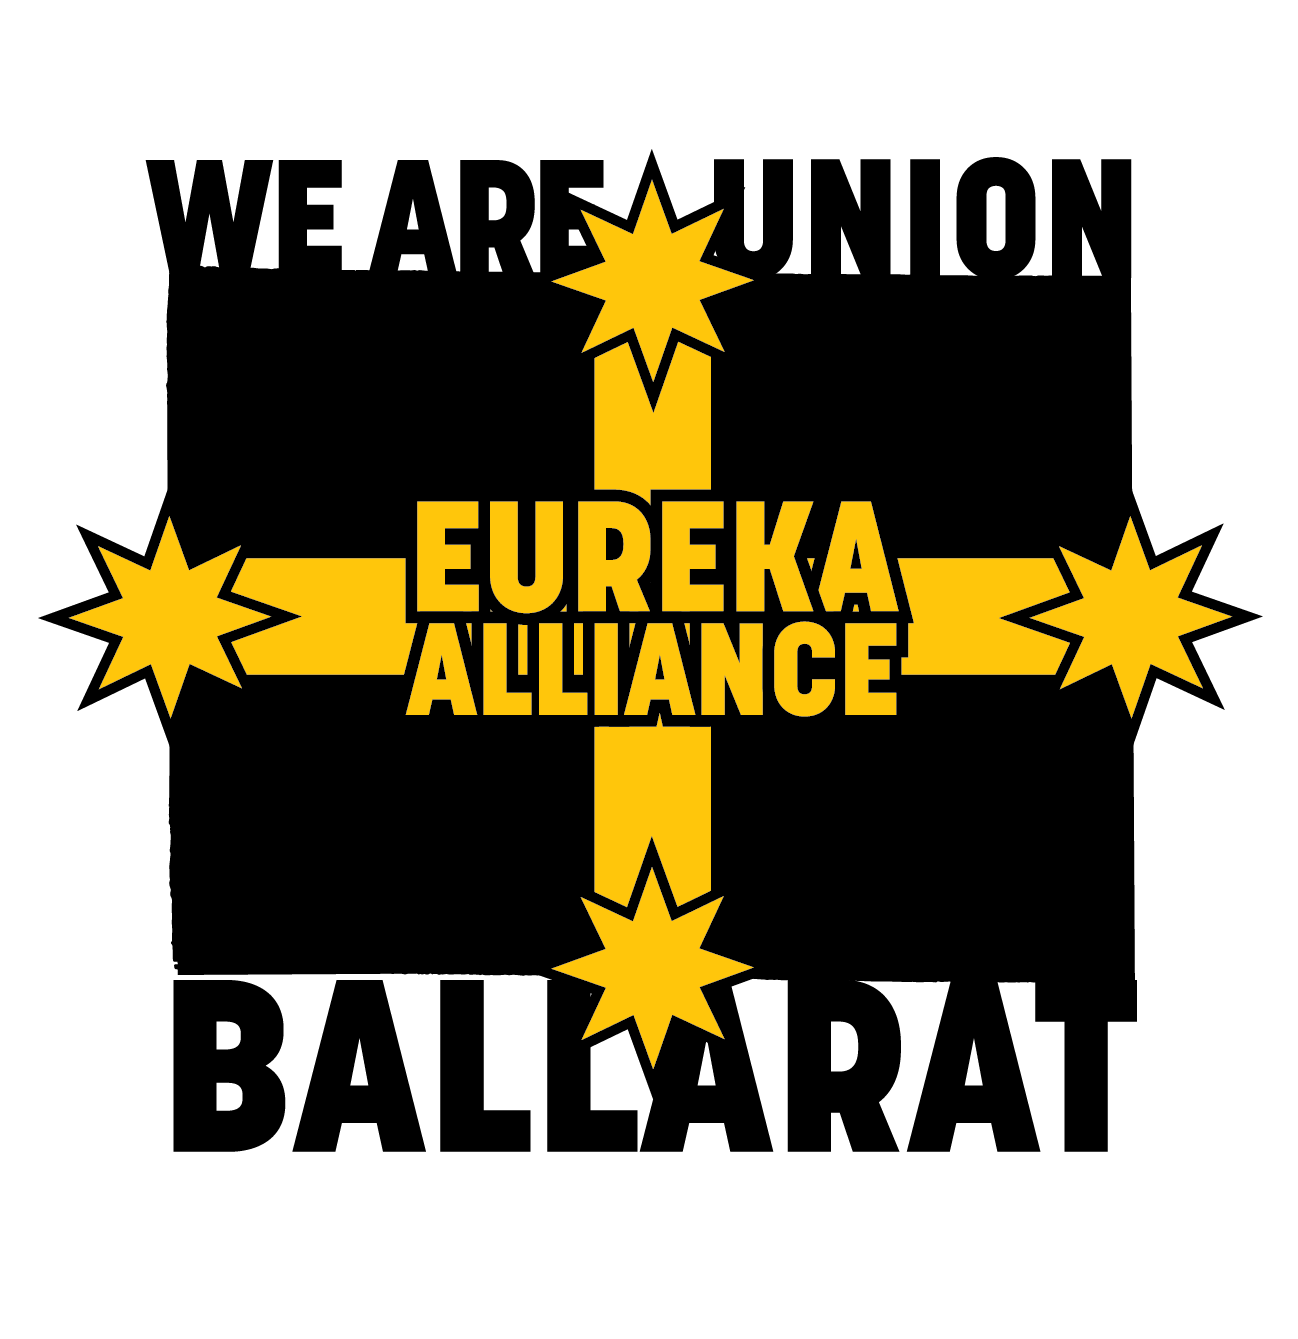 eurkea alliance logo